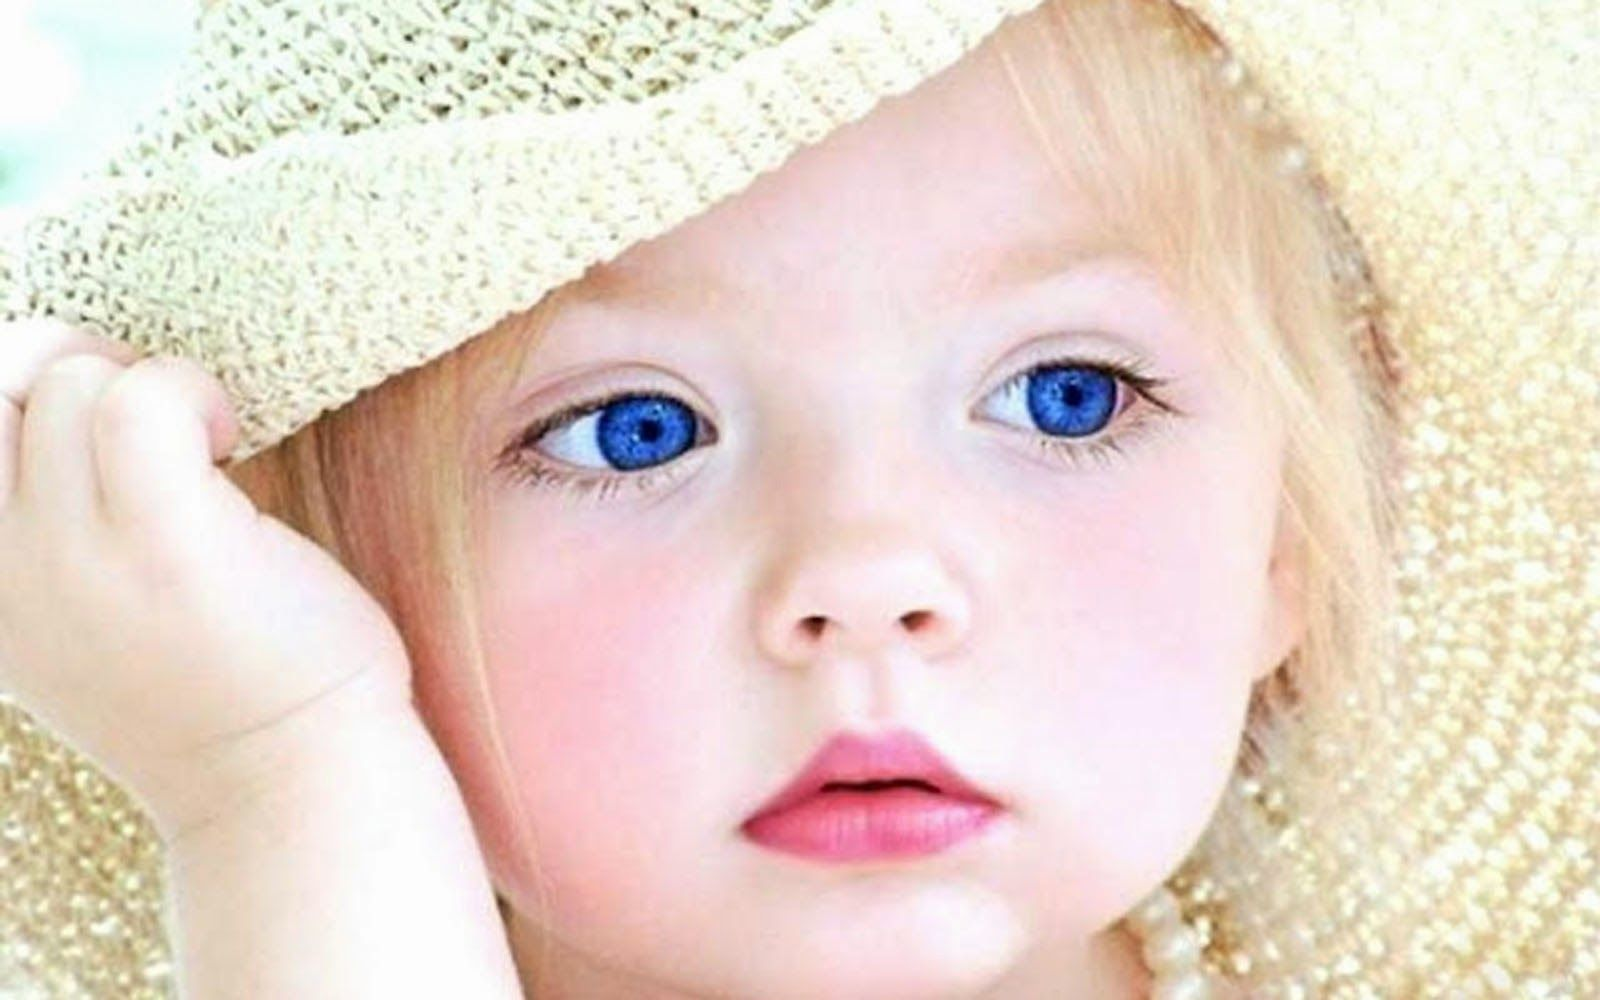 Wallpaper download of baby - Small Baby Wallpaper 1920 1440 Wallpapers Small Baby 49 Wallpapers Adorable Wallpapers